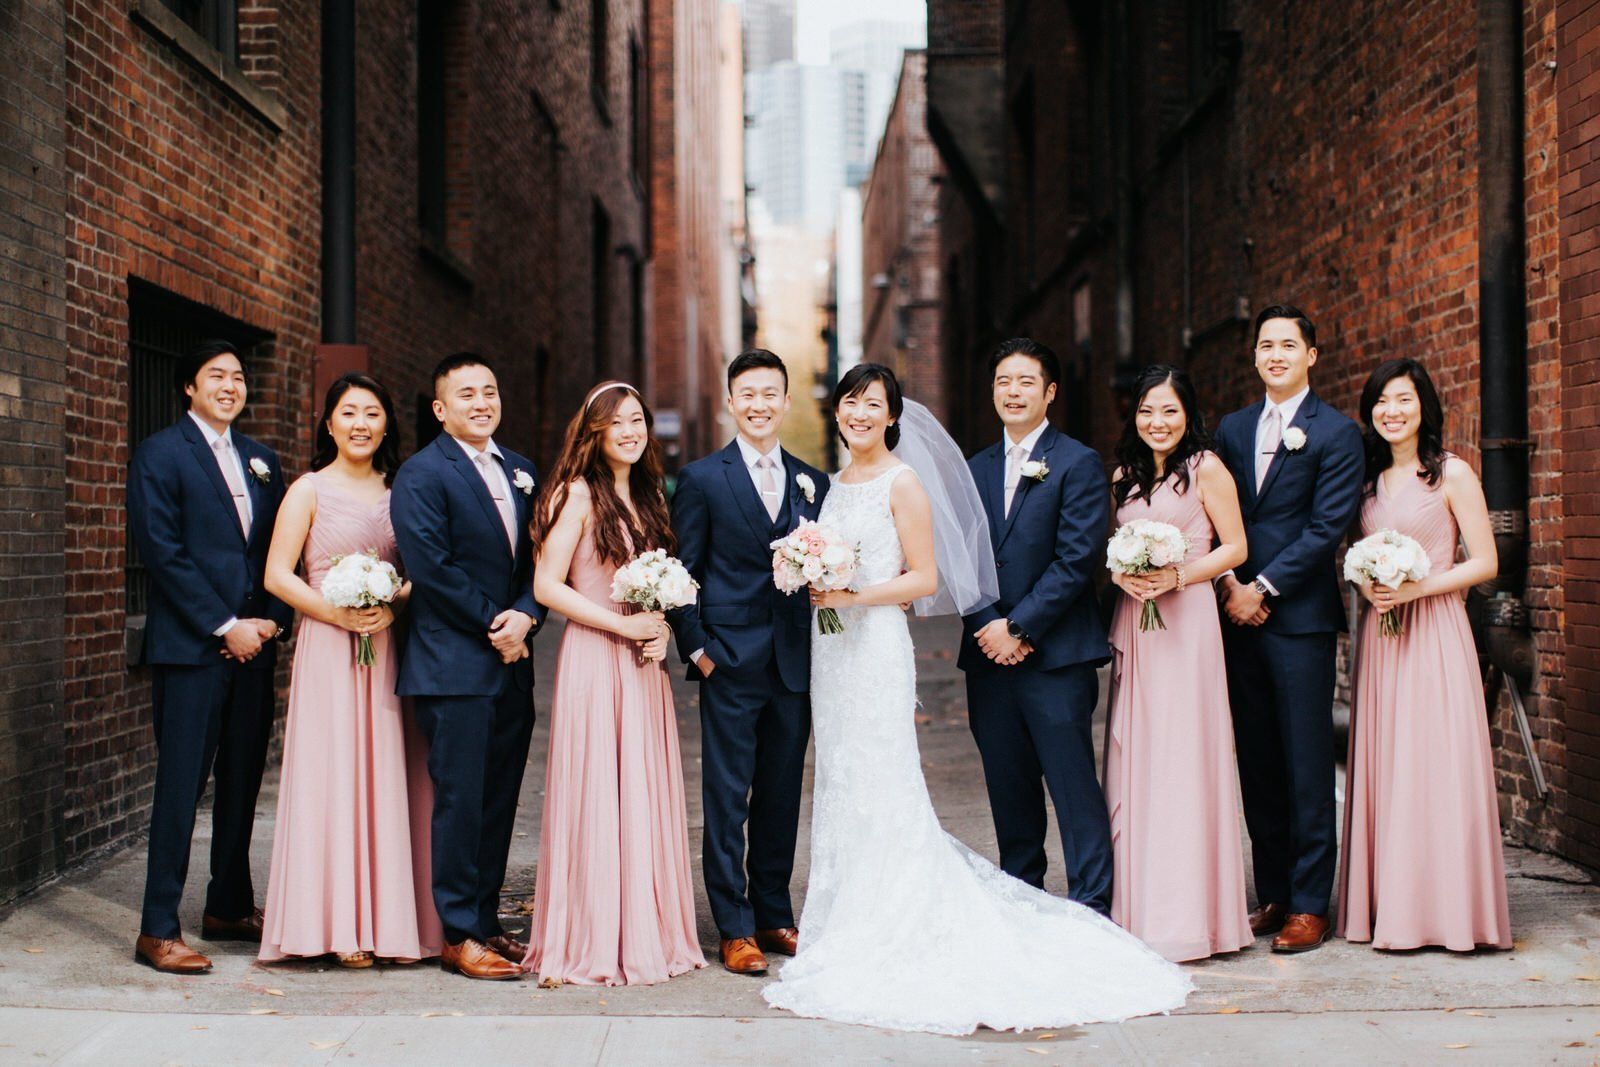 The wedding party poses in an alleyway in pioneer square